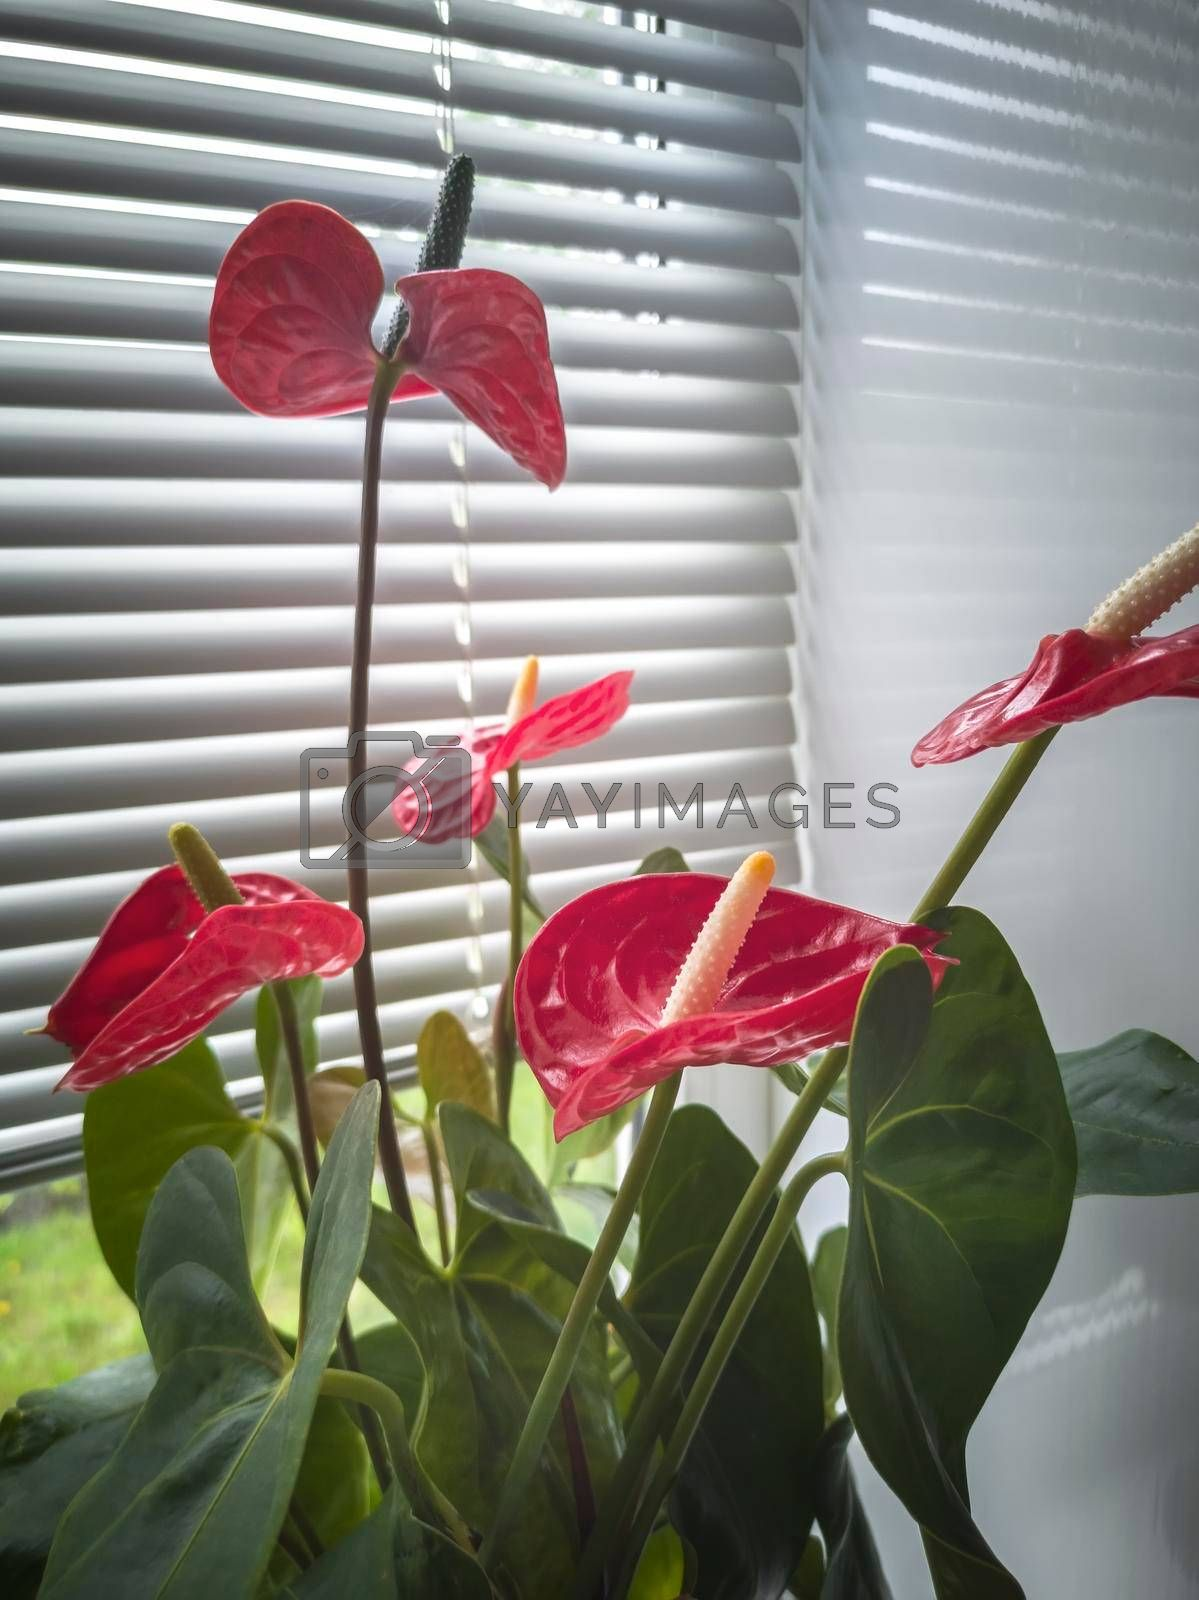 Royalty free image of Beautiful blooming indoor anthurium flower on the windowsill by georgina198